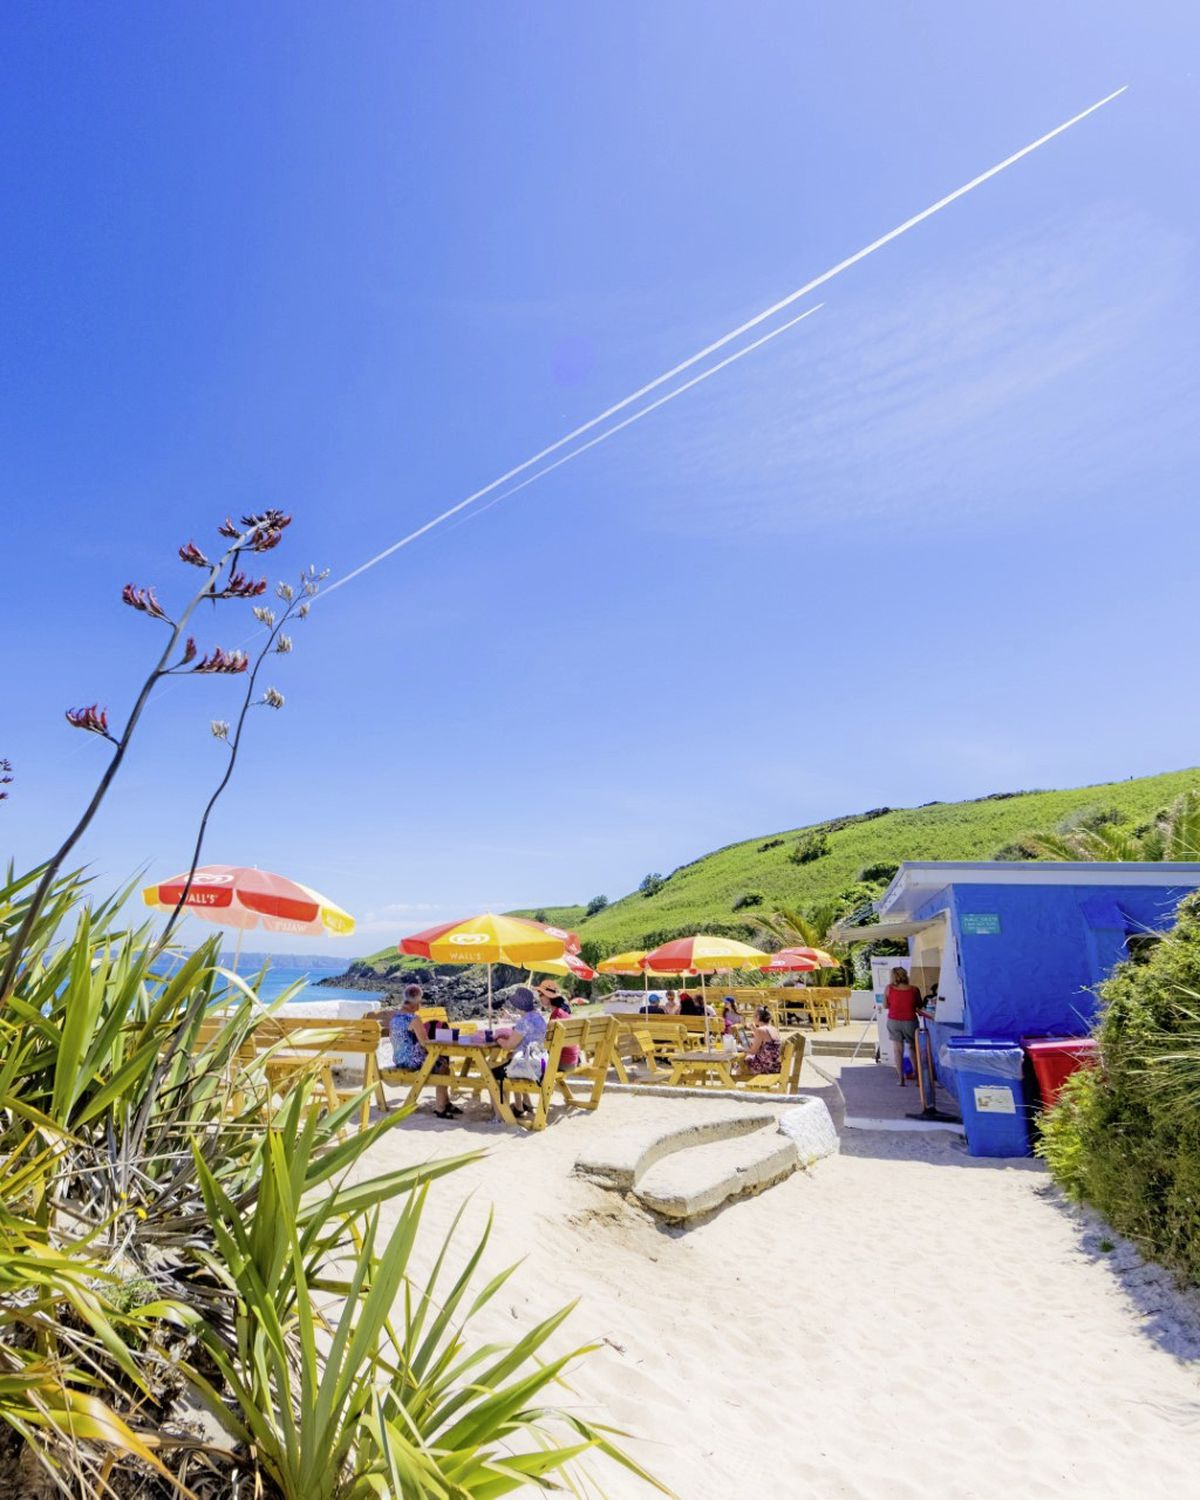 The cafe at Shell Beach obtained a liquor licence this year, which has been reported as a success story. (Picture by Ben Fiore Photography)